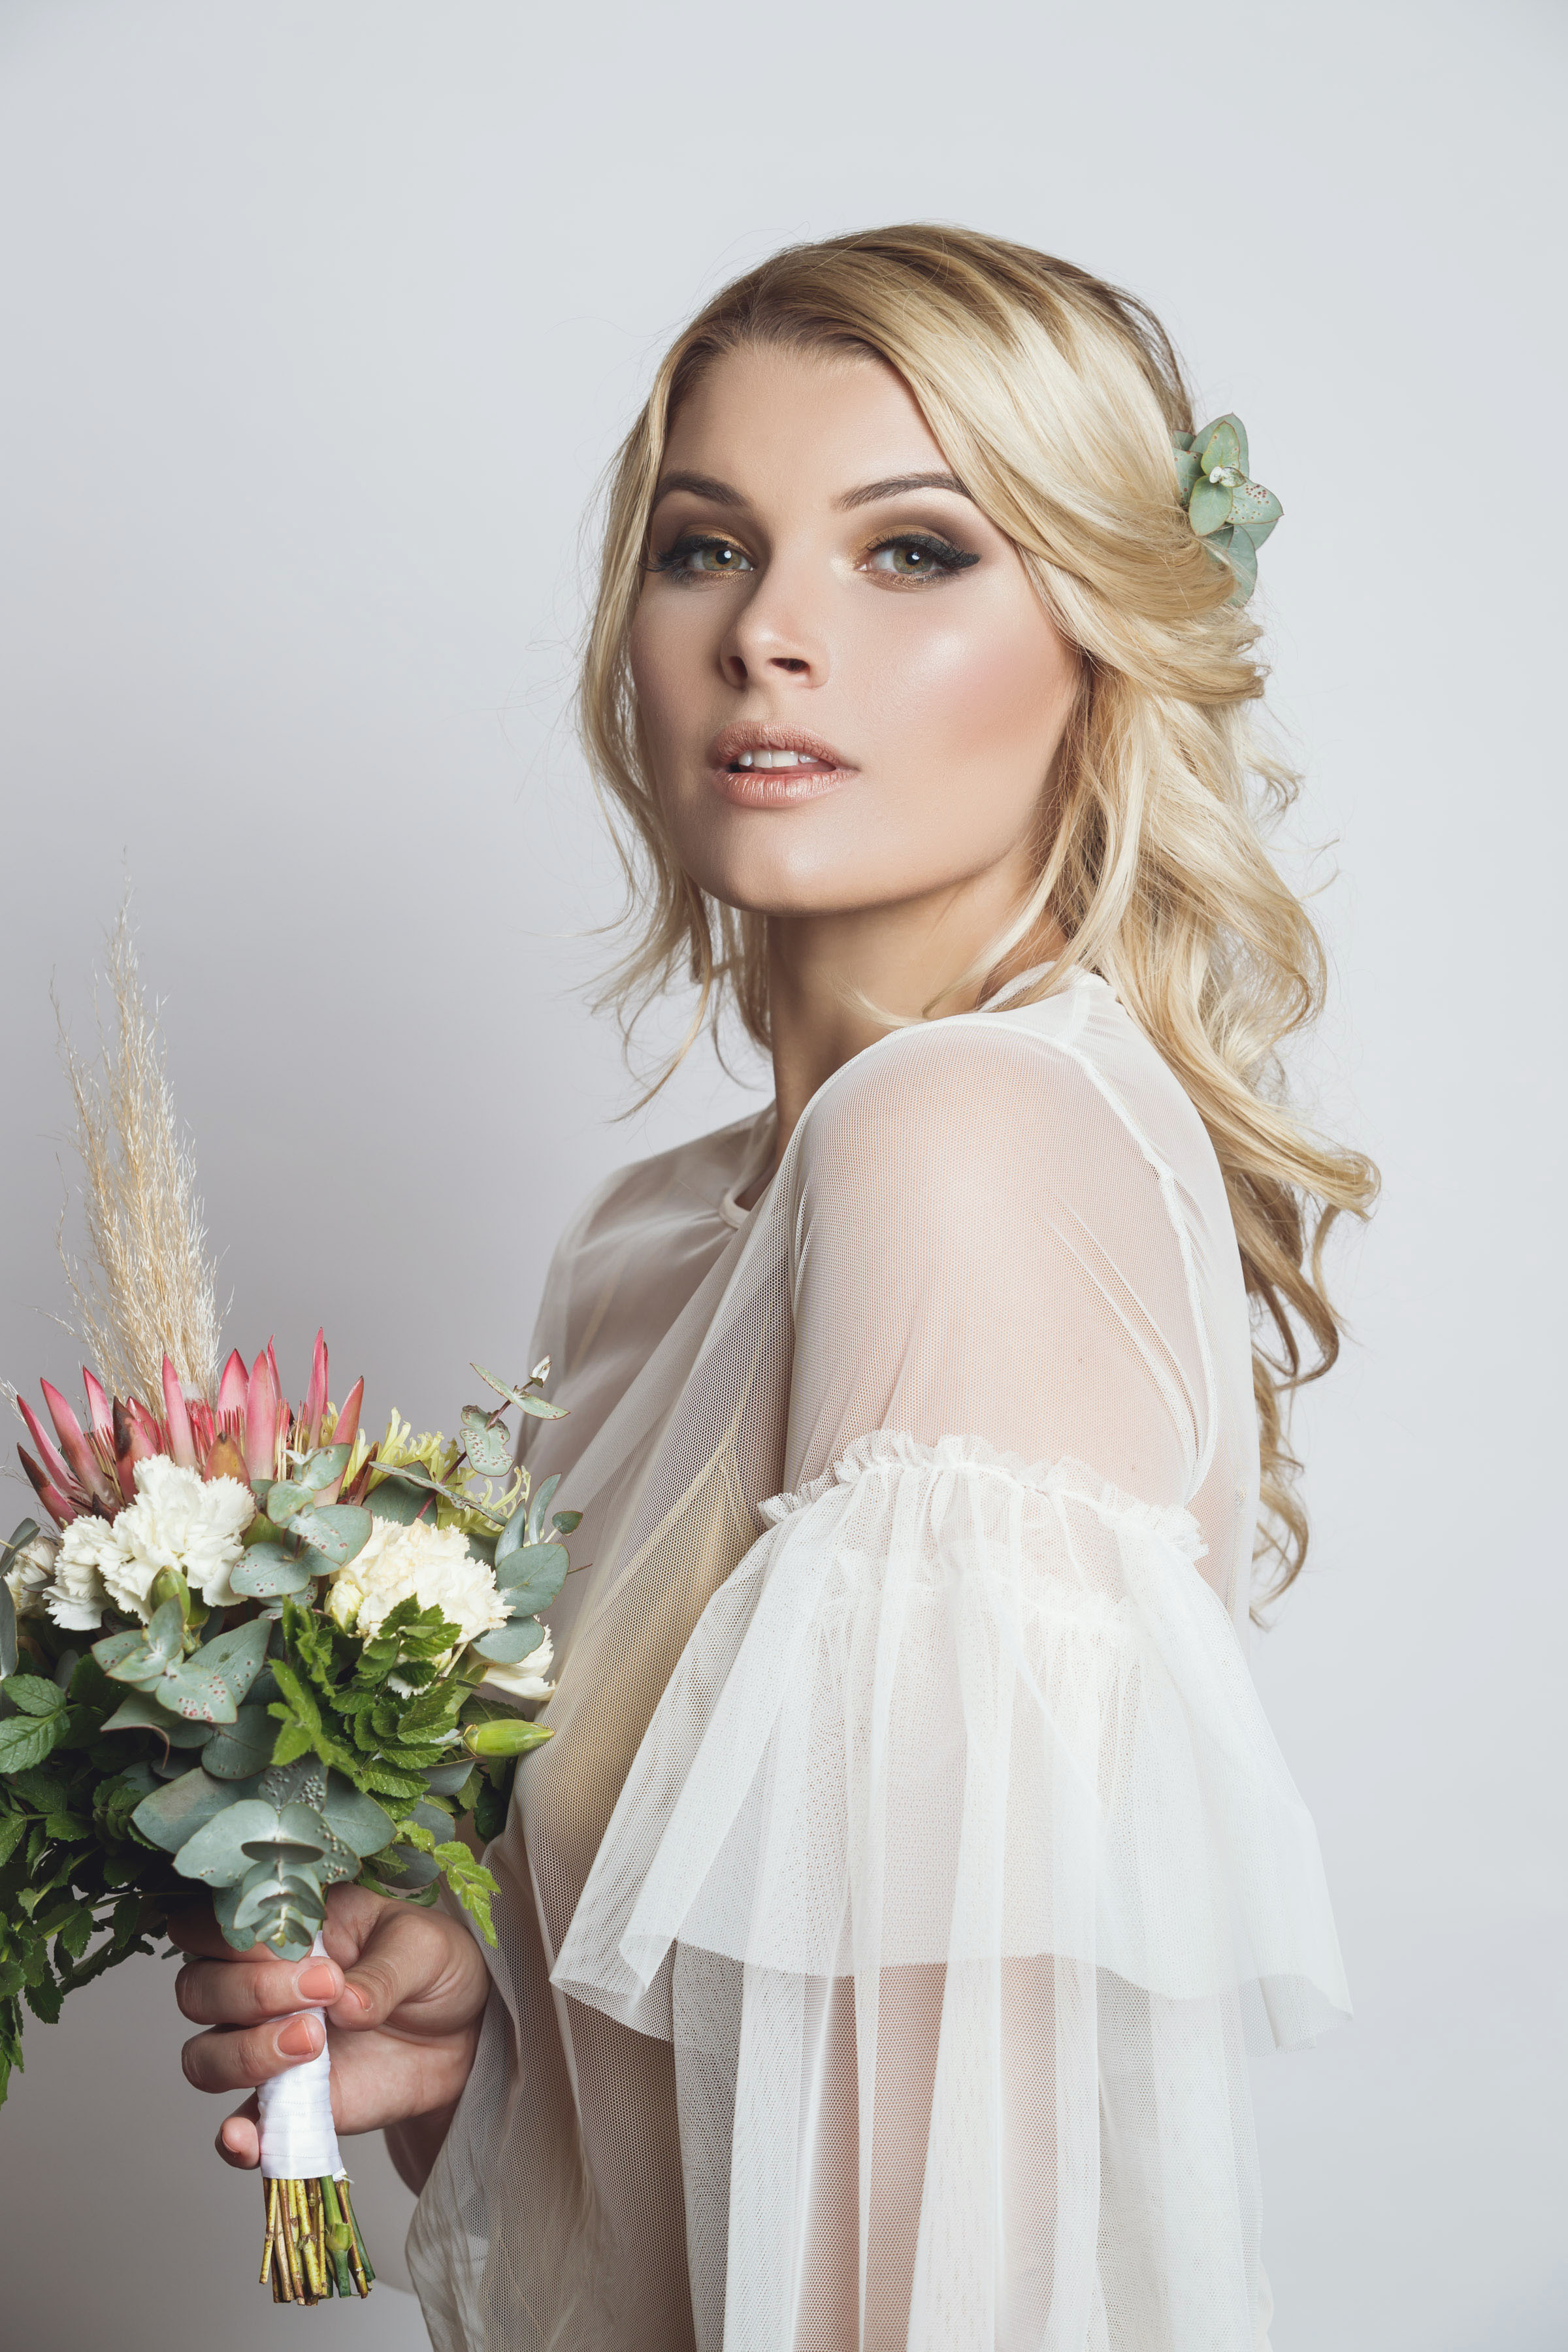 Menu of Services - **BRIDAL PACKAGES AVAILABLE**Bridal HairstylingBridal MakeupBridal TrialsClip-In Hair ExtensionsBridesmaid/Attendant HairstylingBridesmaid/Attendant MakeupBridesmaid/Attendant BlowdryFlower Girl Hair & Age appropriate make upAges 5 and underAges 6-10*Over 10 same rates as Attendants apply